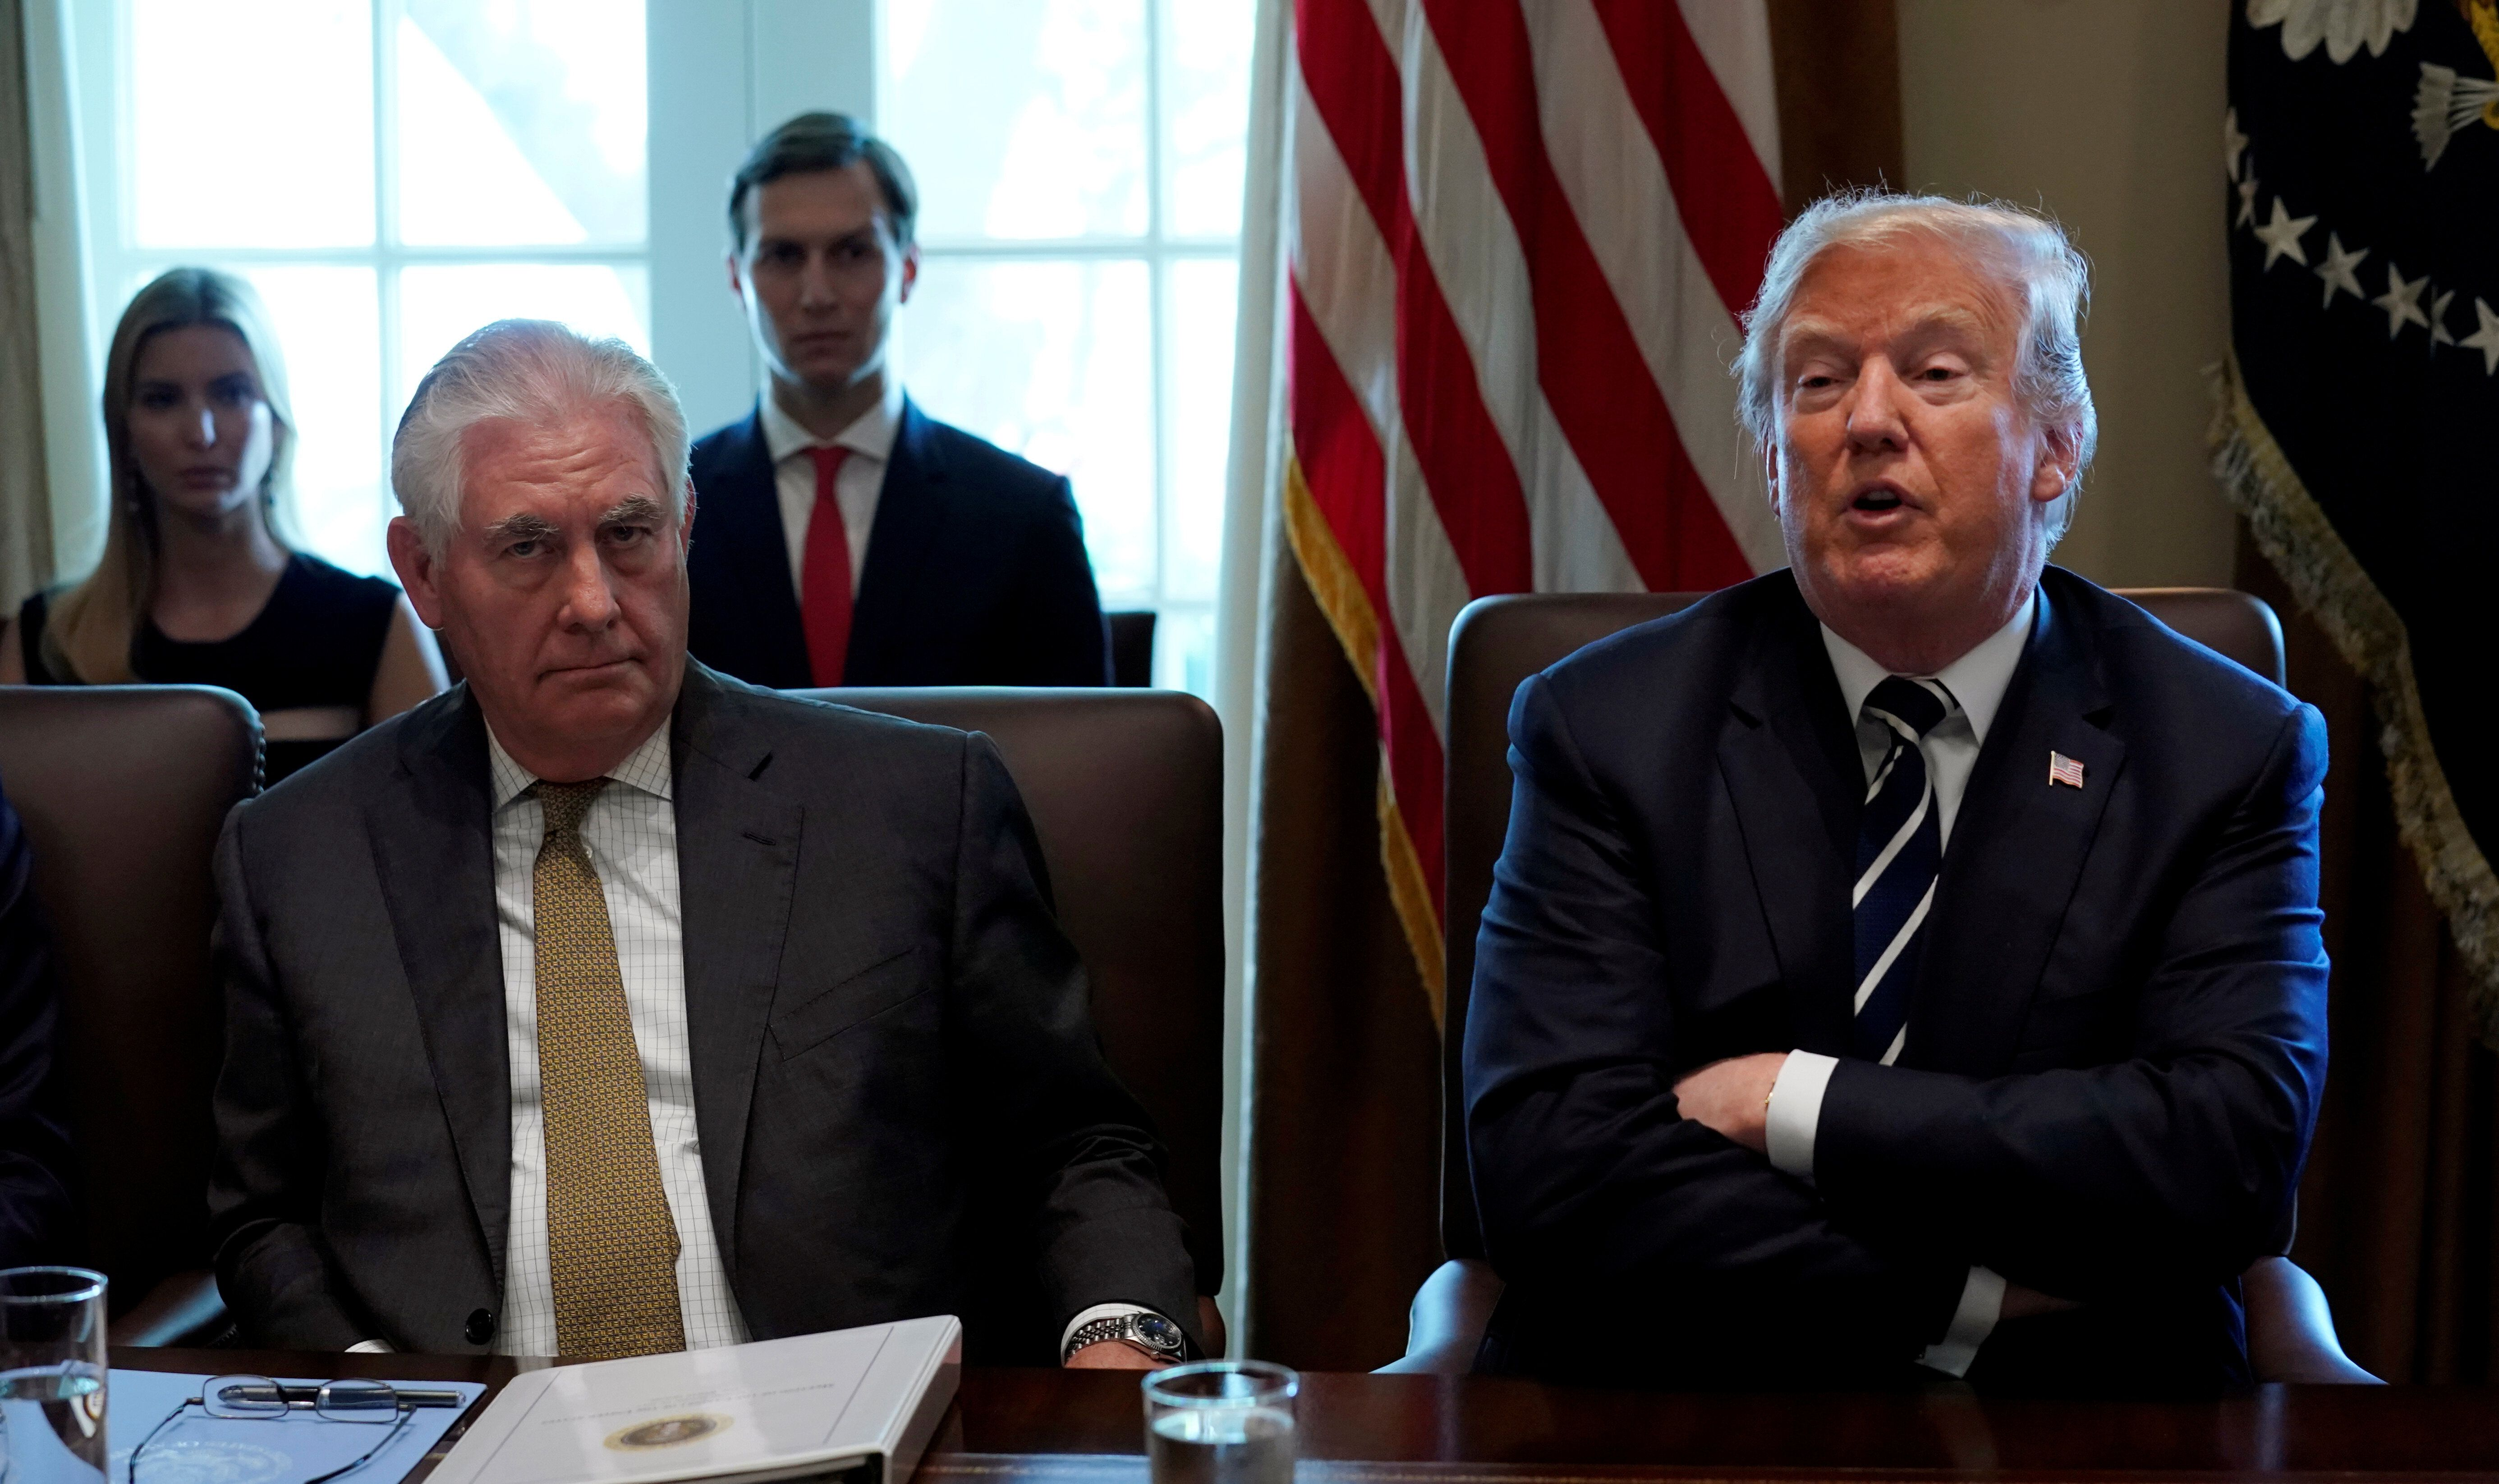 President Donald Trump had little familiarity with his first secretary of state, Rex Tillerson (left), before he appointed hi